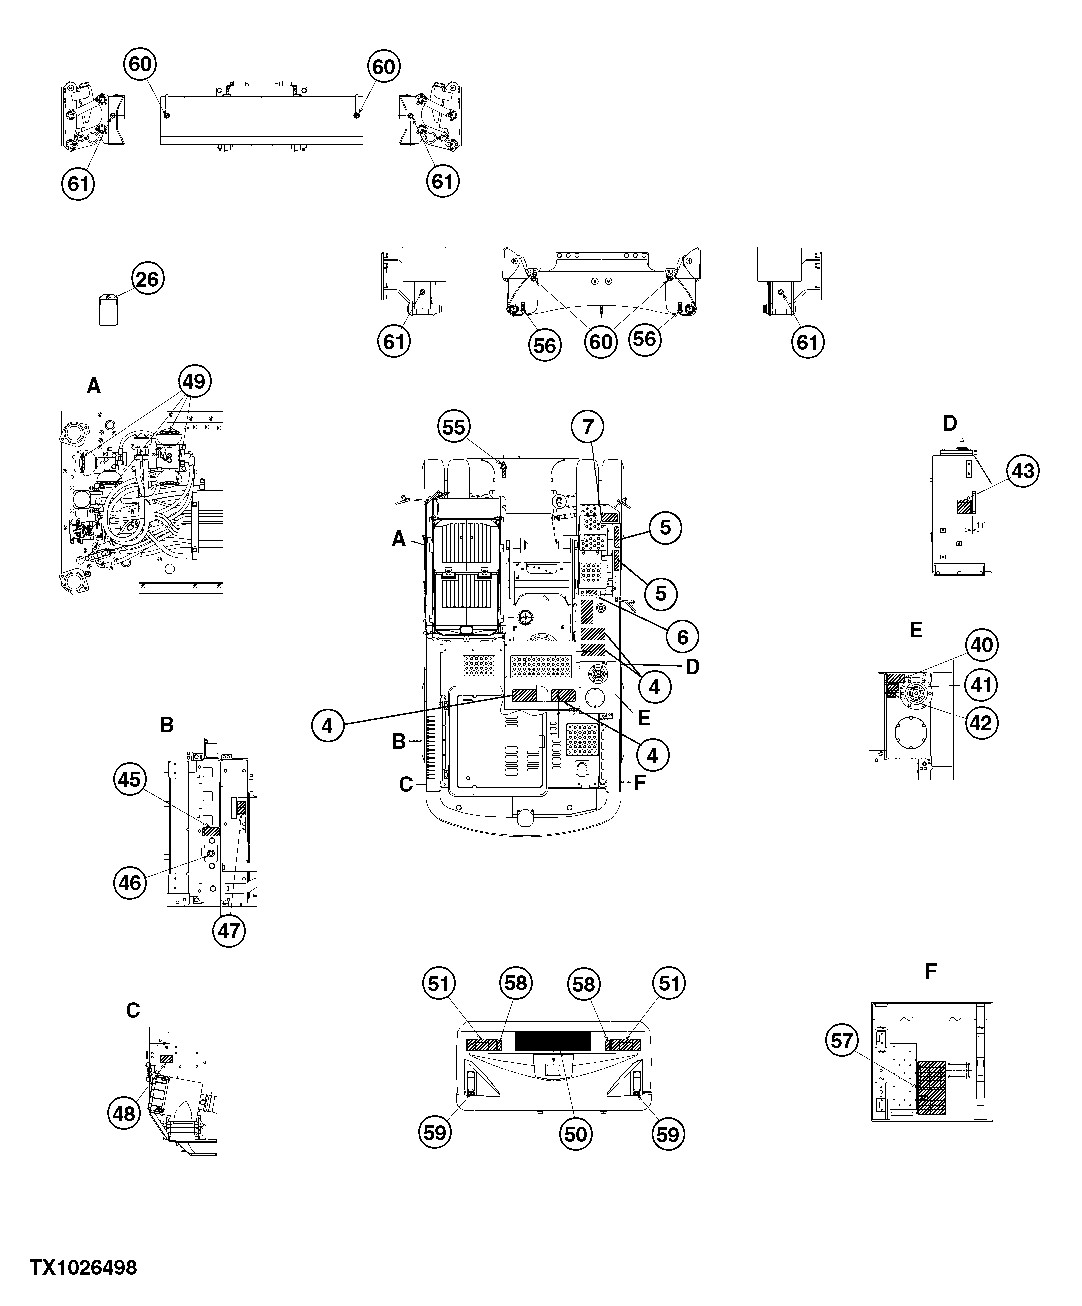 tail light wiring diagram chevy s10 vt 3824  chevy s10 tail light wiring download diagram  vt 3824  chevy s10 tail light wiring